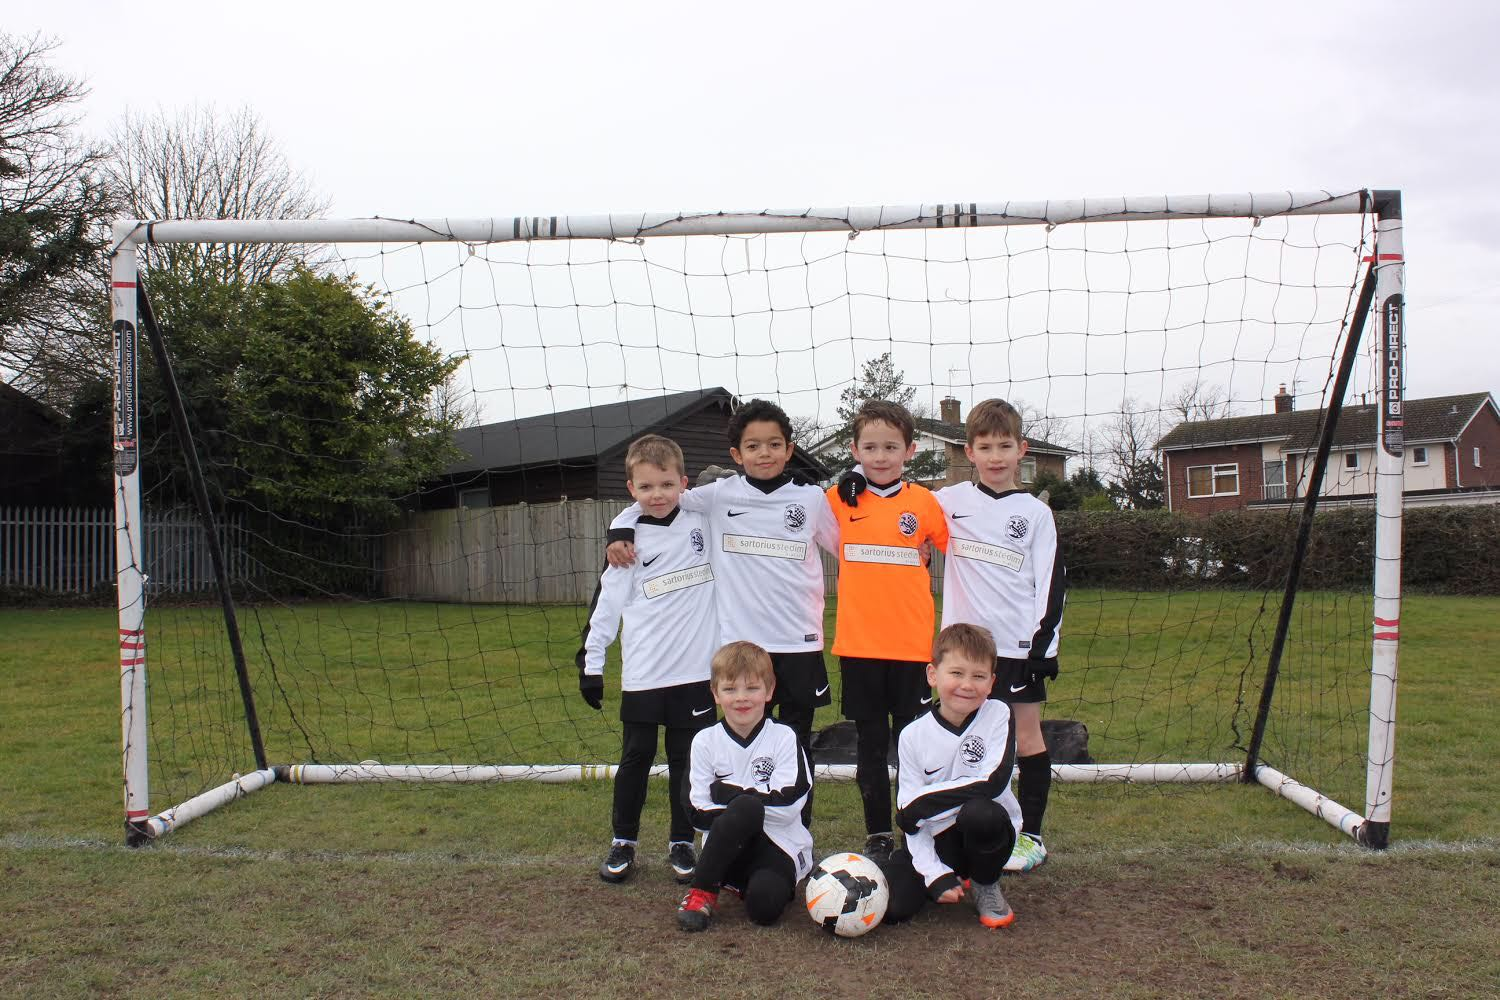 The under 7's